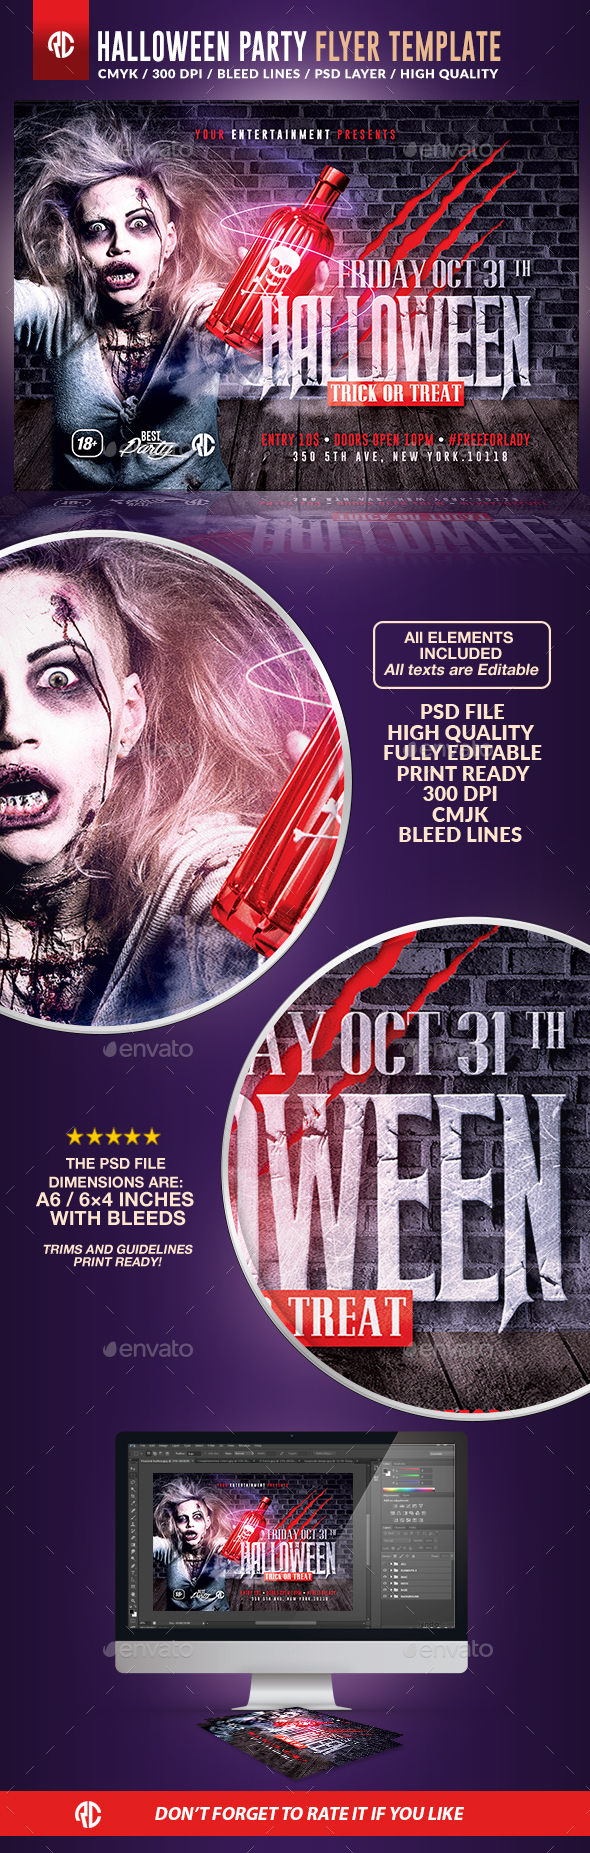 Halloween Night Party | Psd Flyer Template - Holidays Events